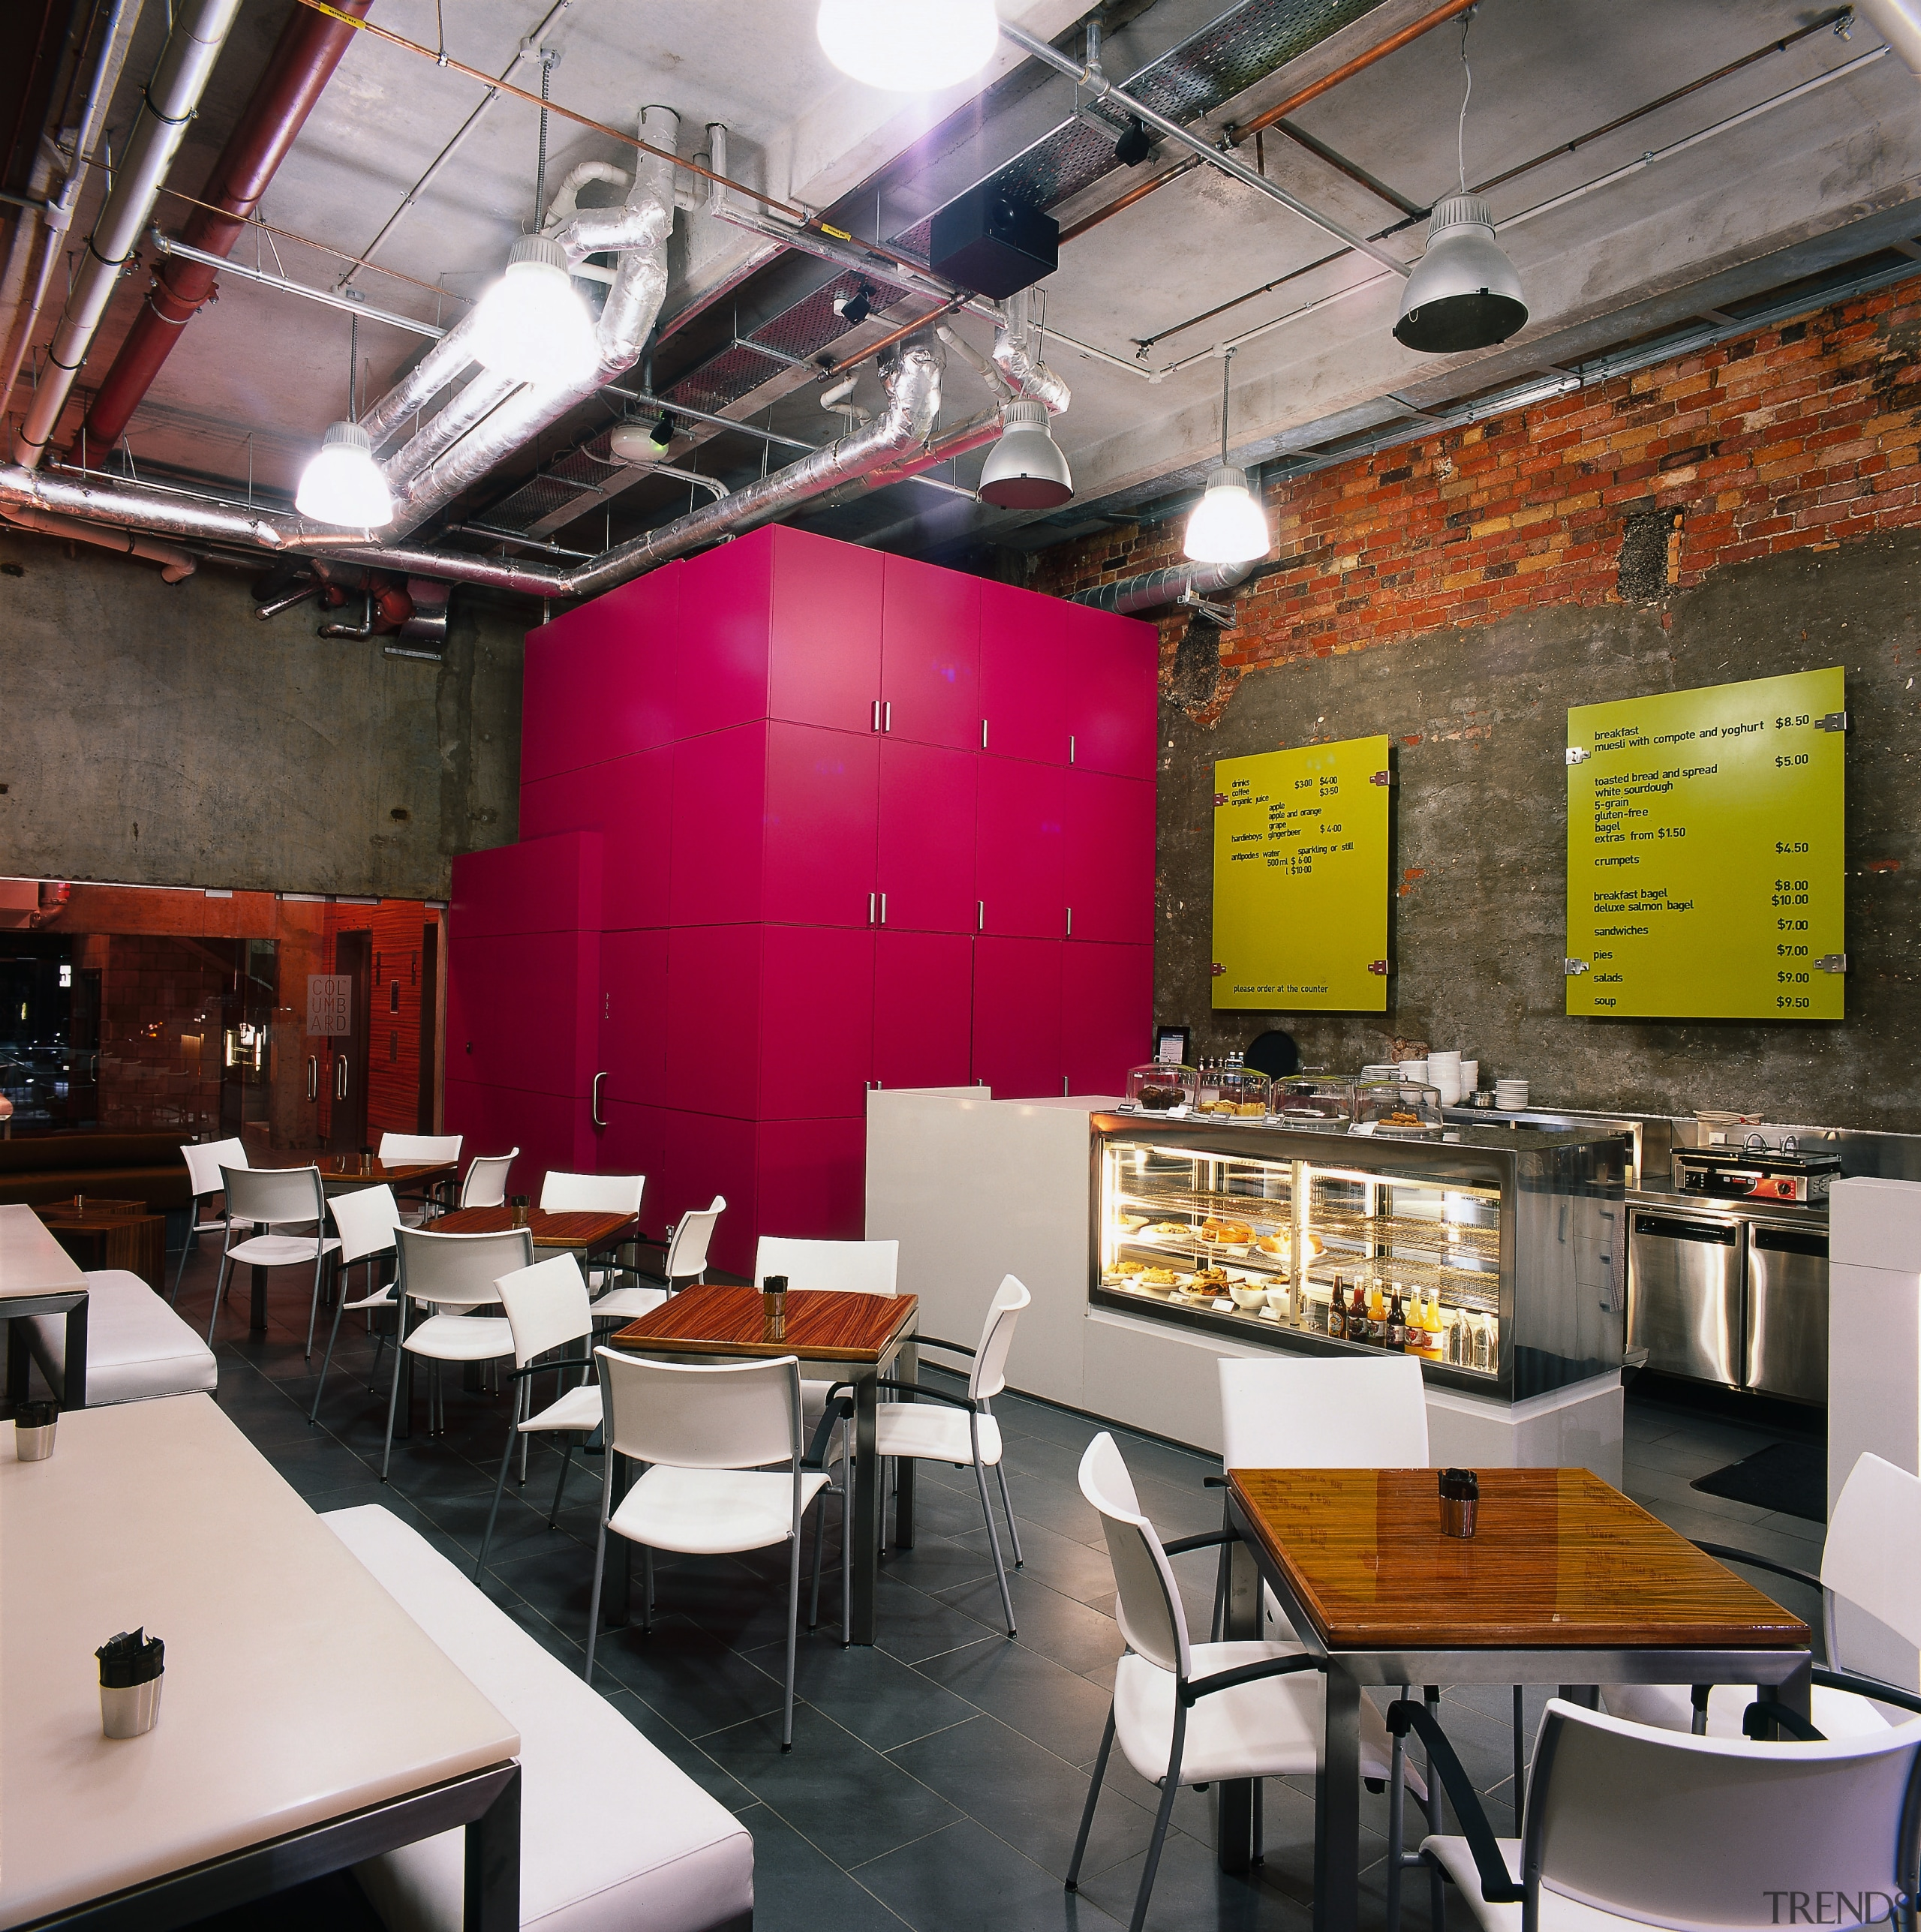 Cafe with exposed brick and concrete walls, exposed café, fast food restaurant, interior design, restaurant, gray, black